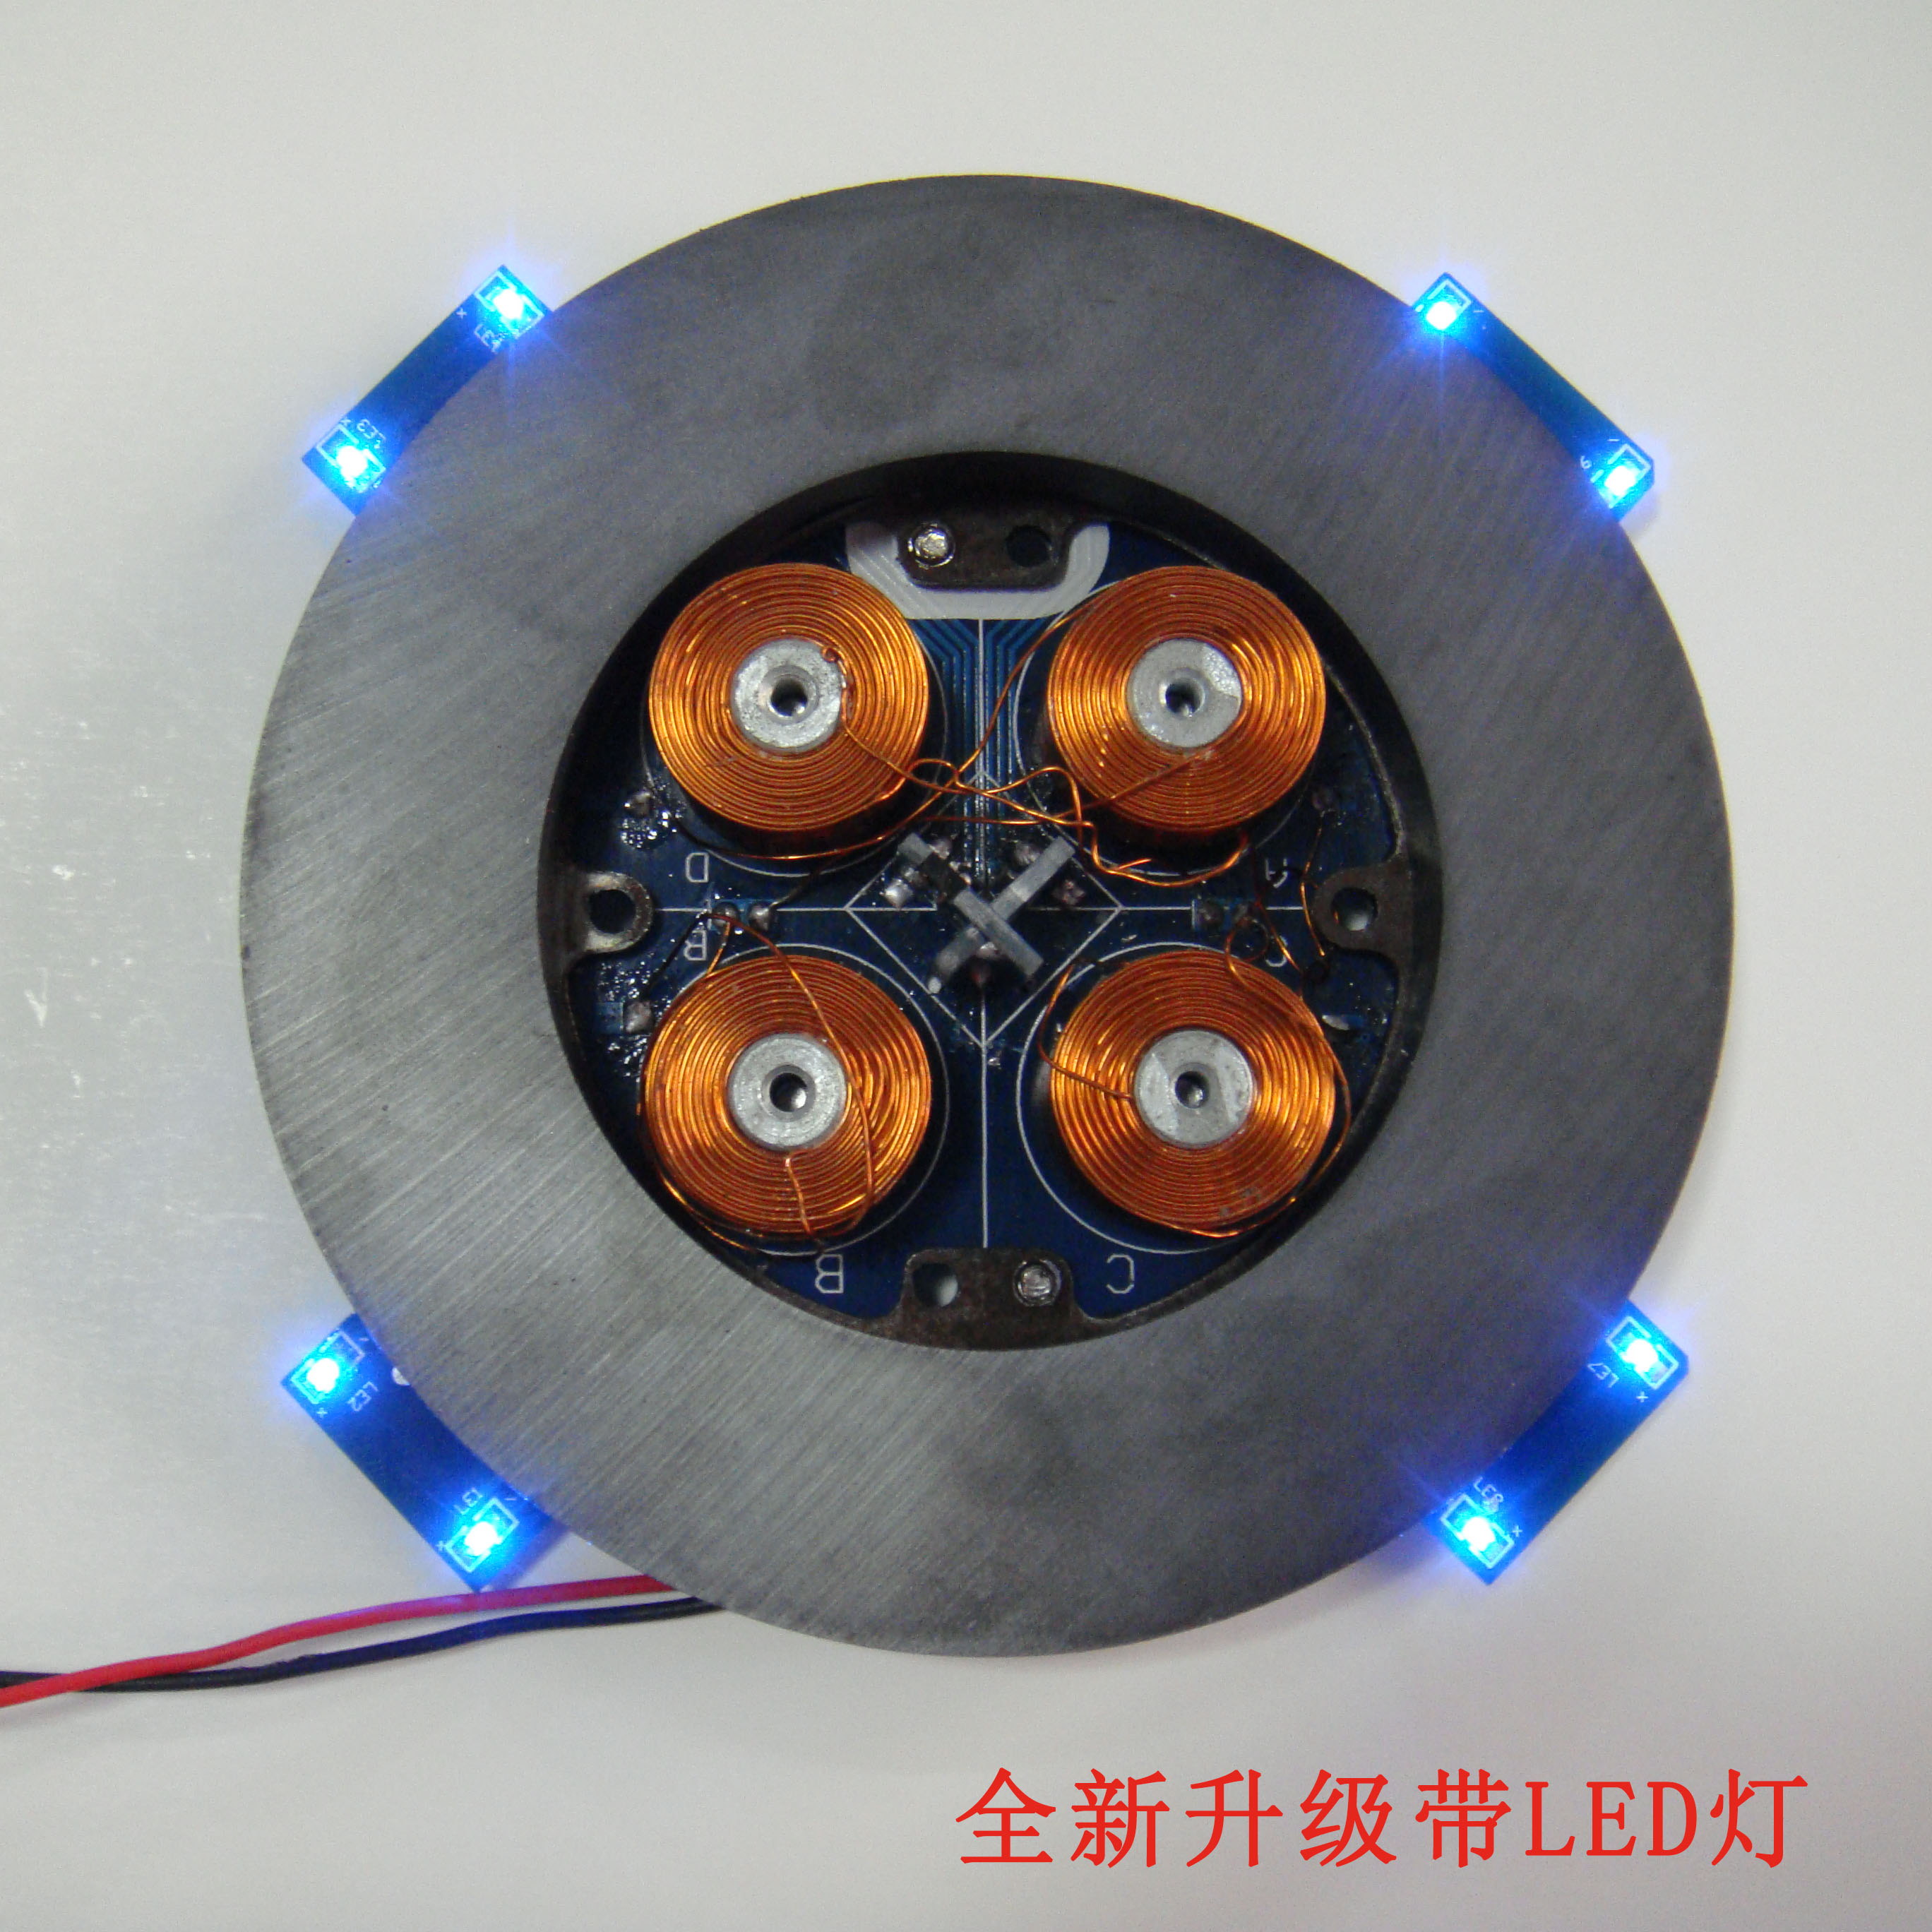 The Third Generation Coil 10pieces Of A Magnetic Levitation 100 Led Pwm Tubelight Circuit Atomizer Temperature Controller System In Counters From Tools On Alibaba Group